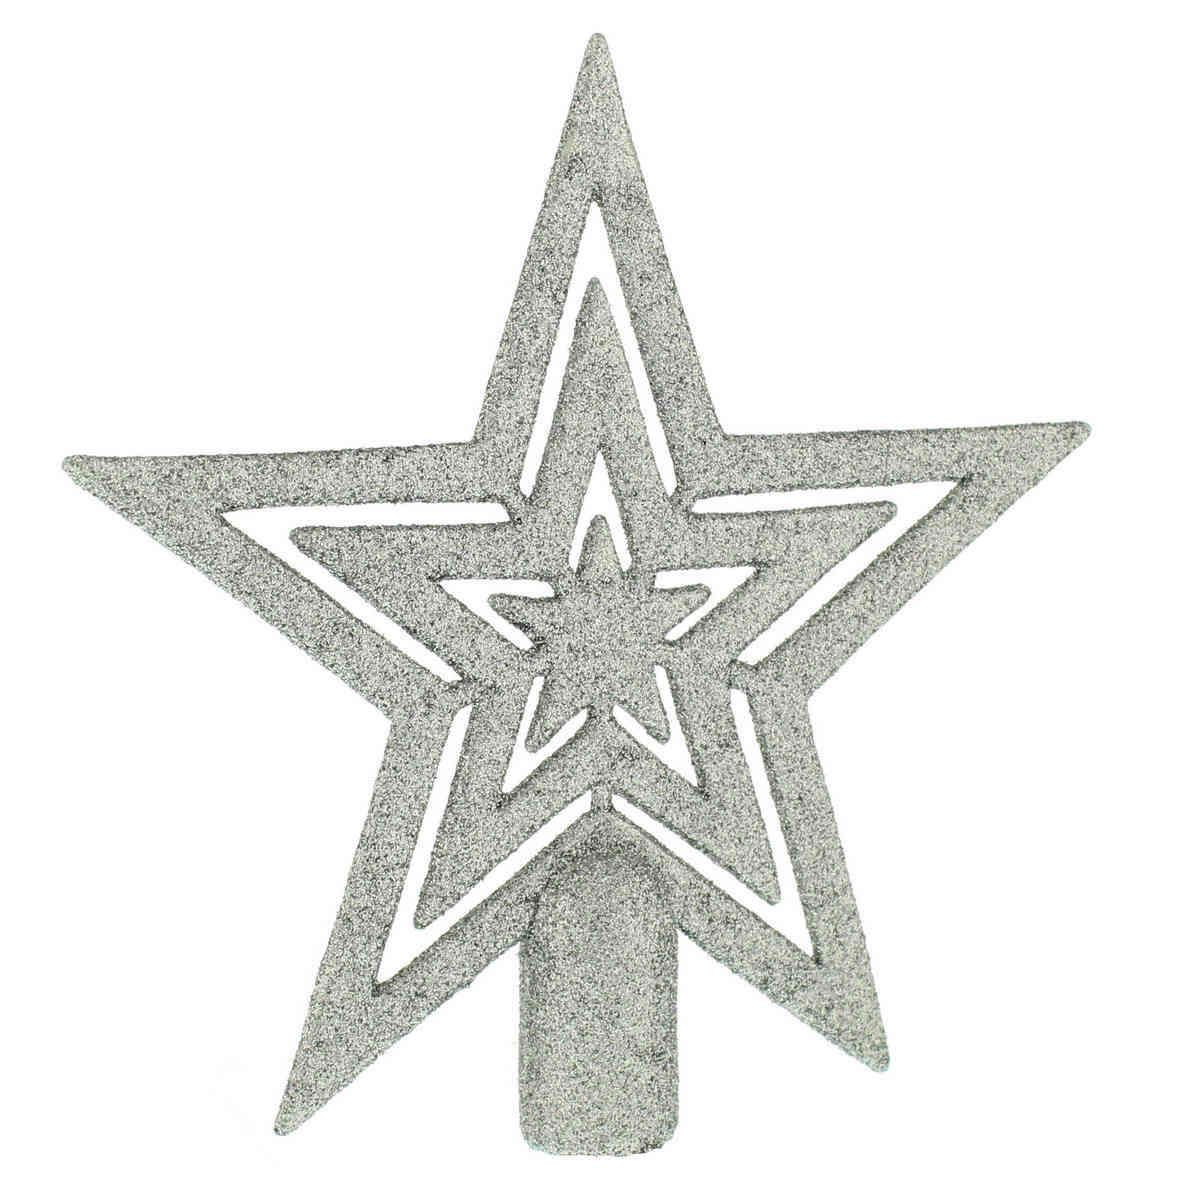 17cm Silver Glittered Star Christmas Tree Topper Decoration